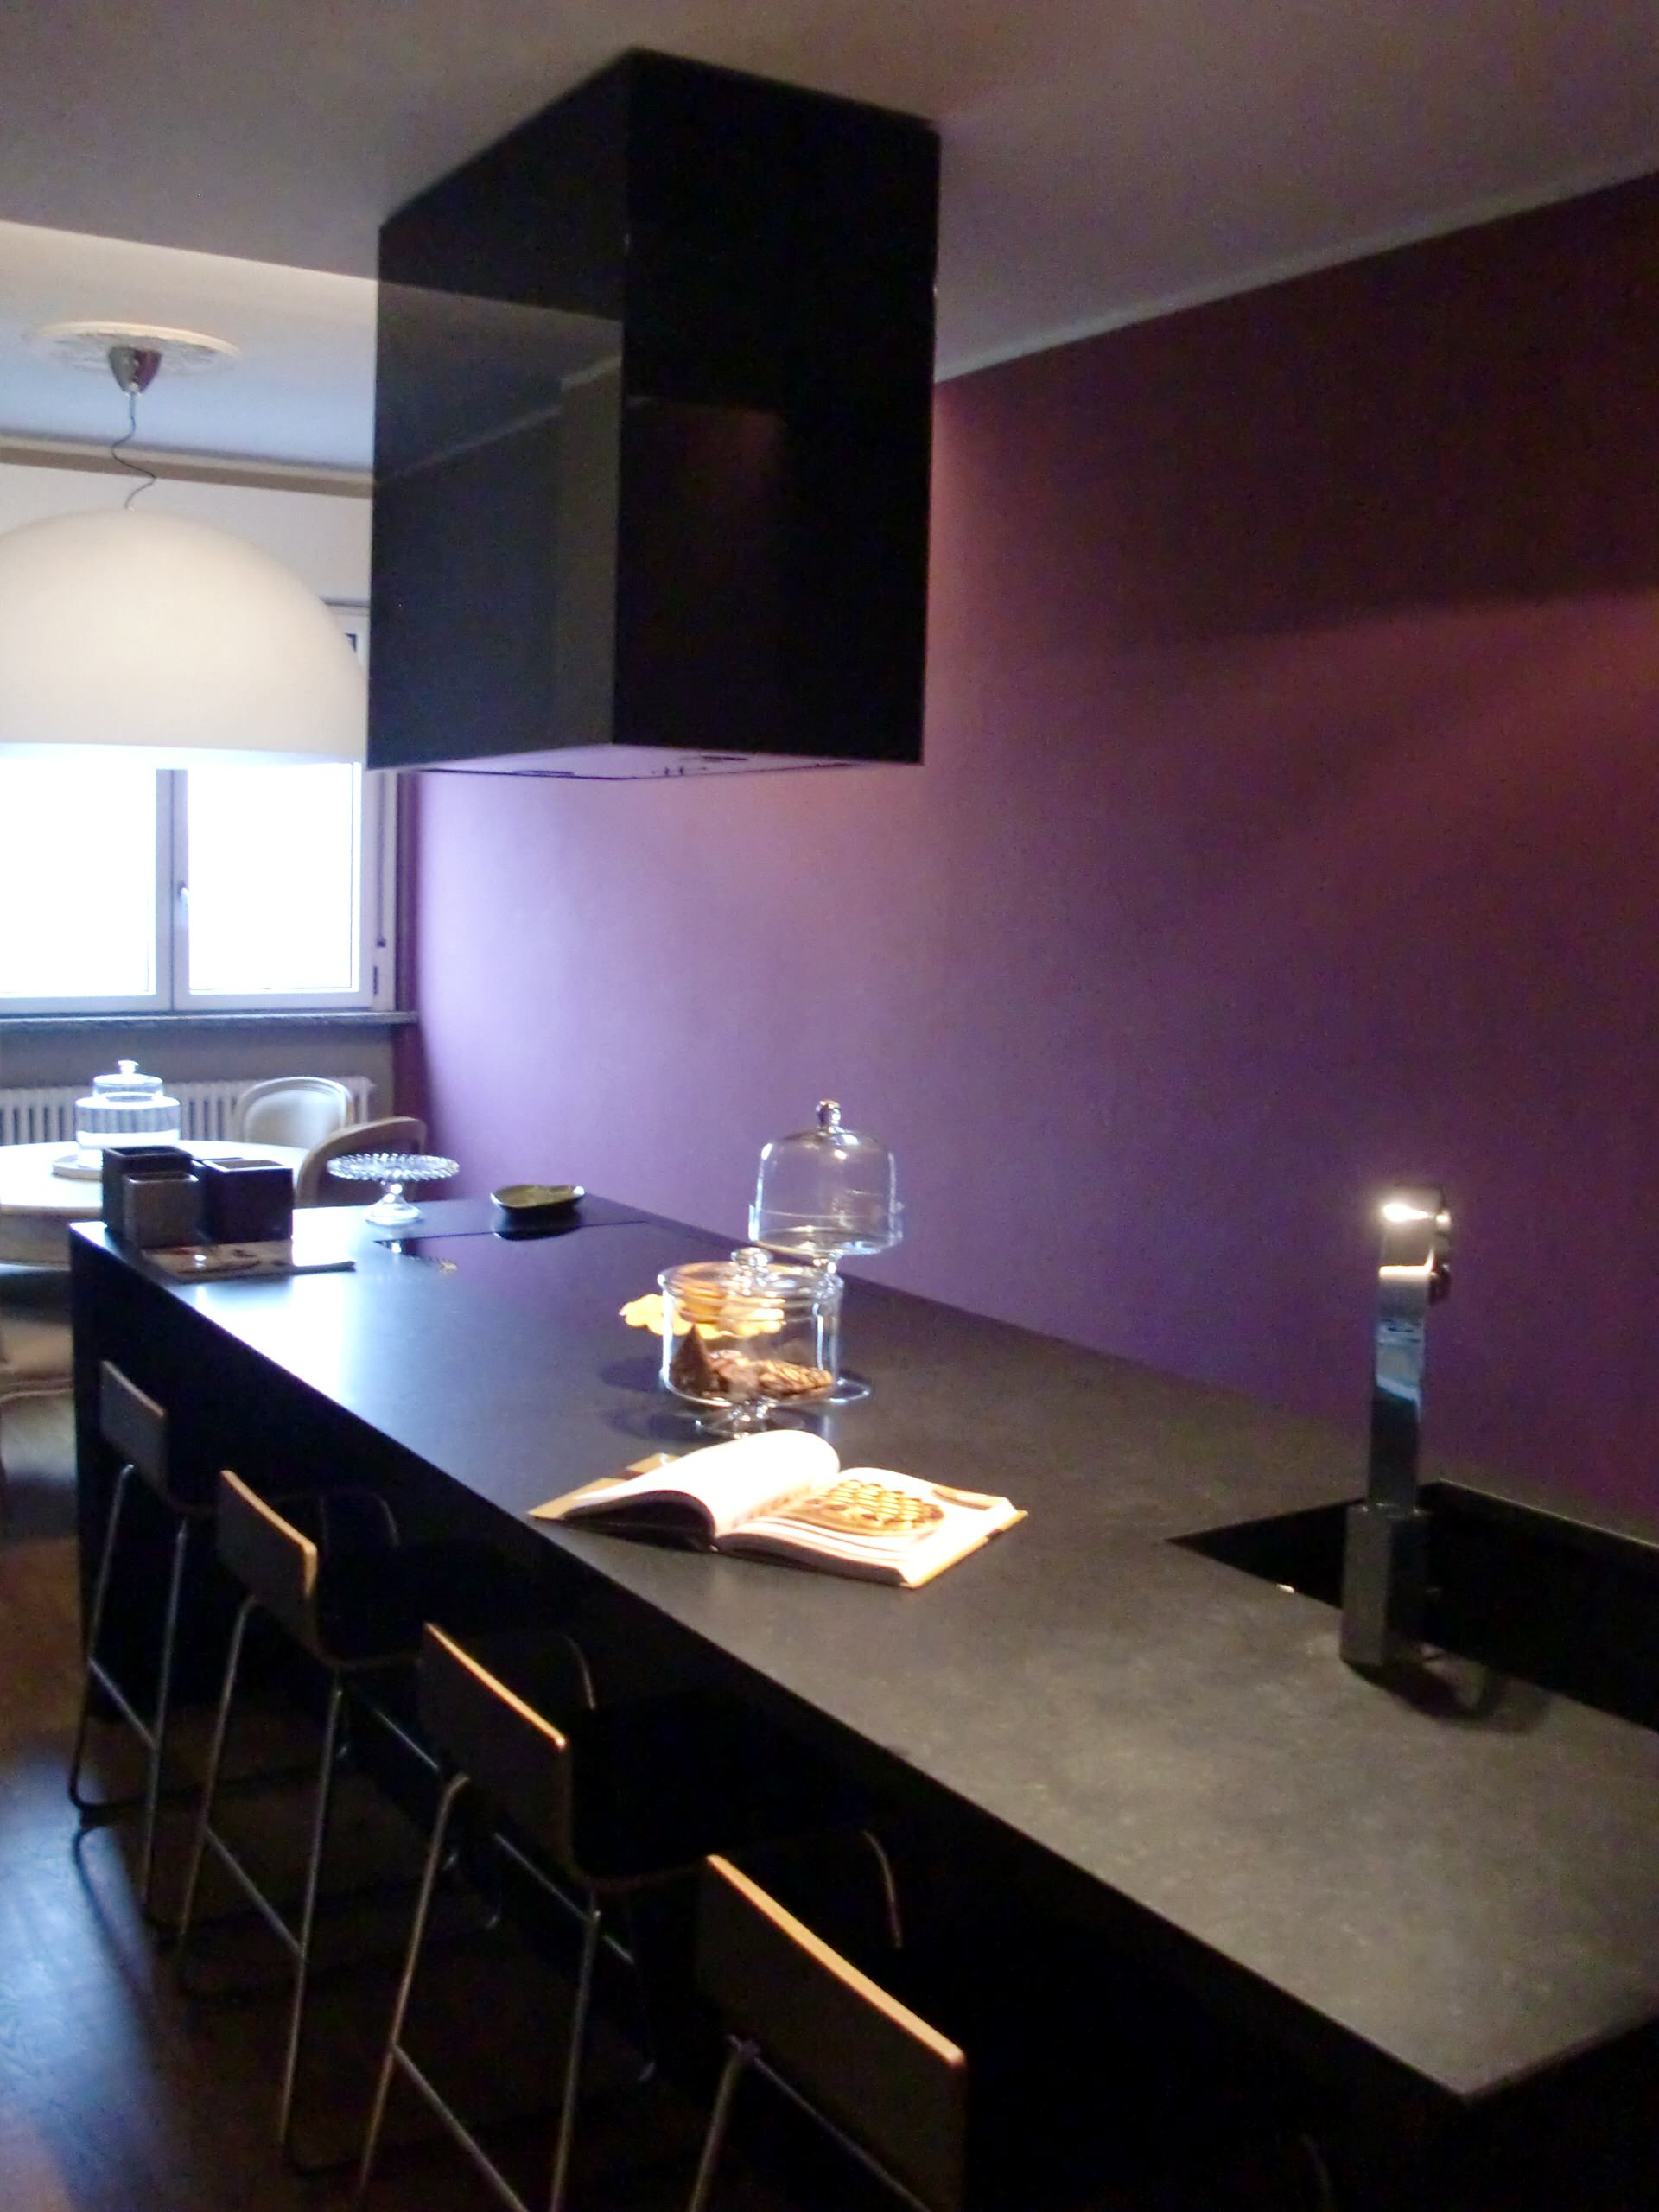 75 Beautiful Purple Kitchen With Black Cabinets Pictures Ideas April 2021 Houzz